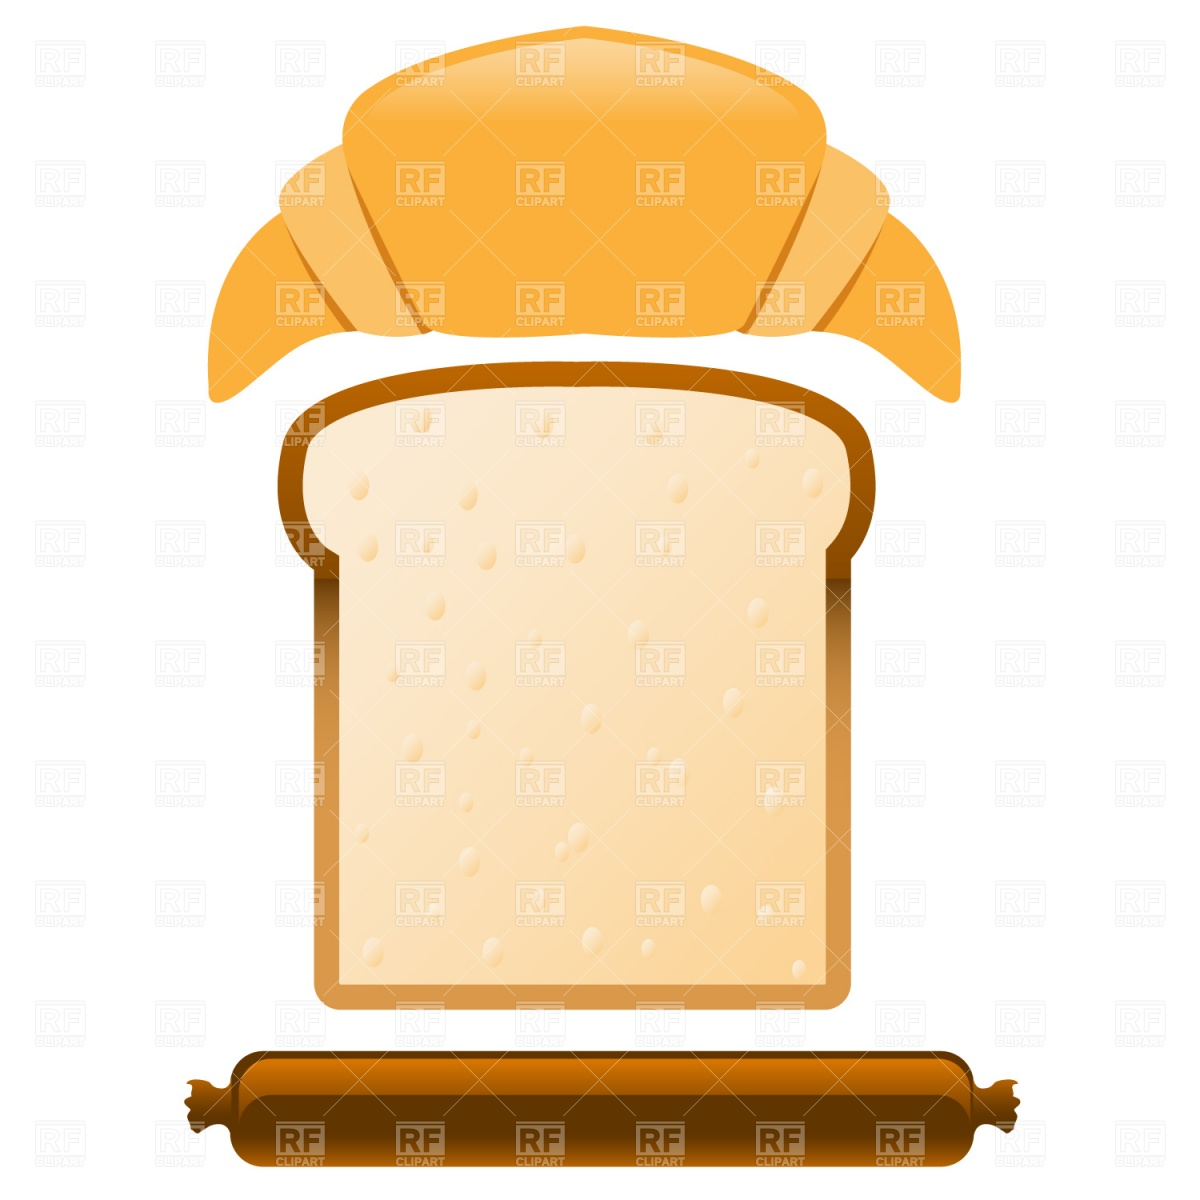 1200x1200 Croissant, Slice Of Bread And Sausage Royalty Free Vector Clip Art